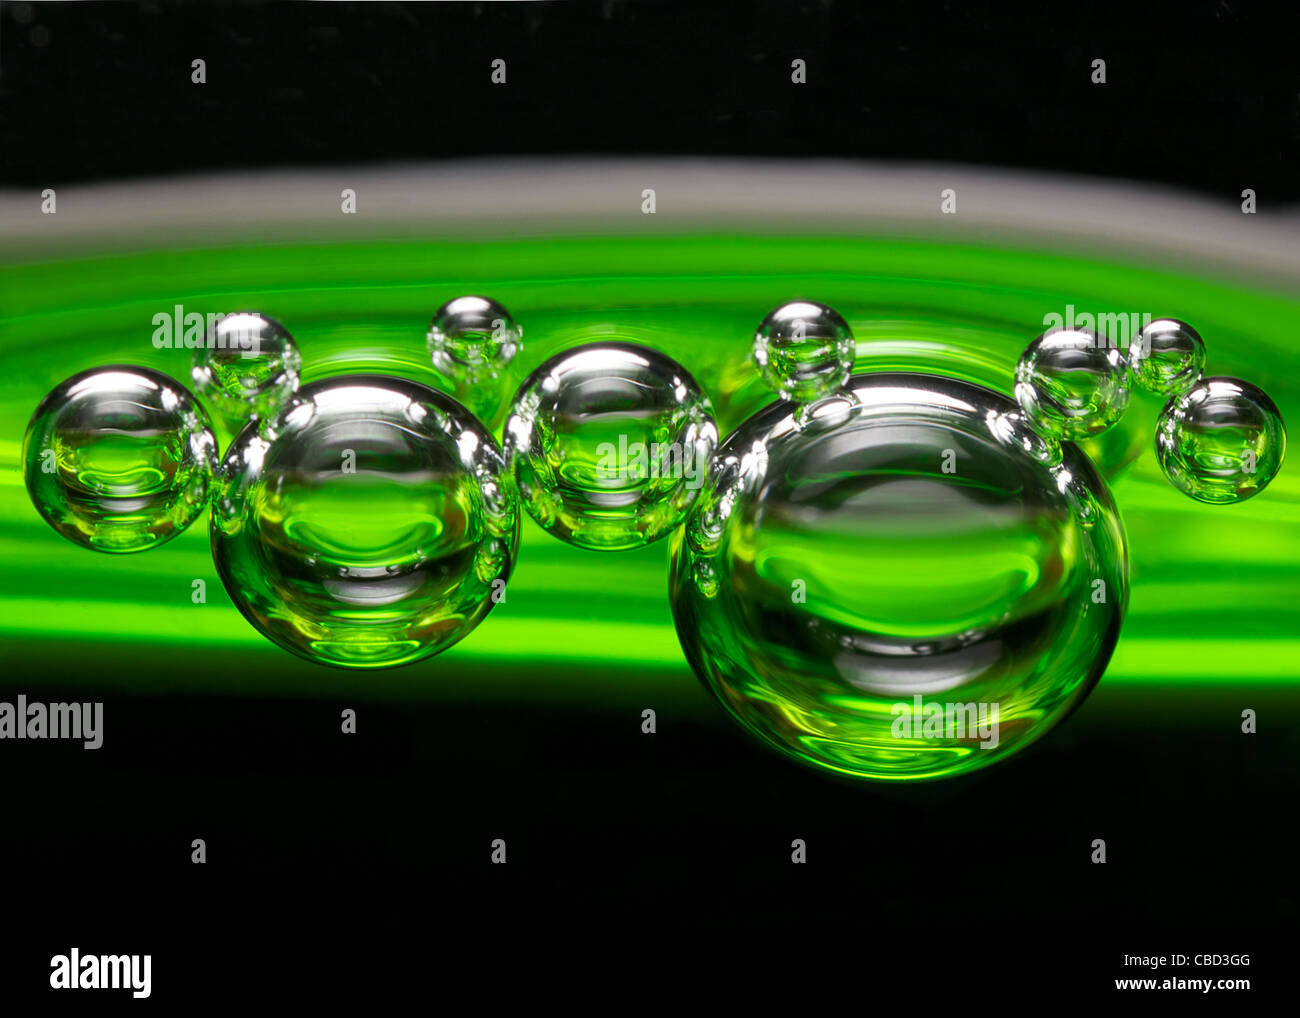 Green fizz up close Photo Stock